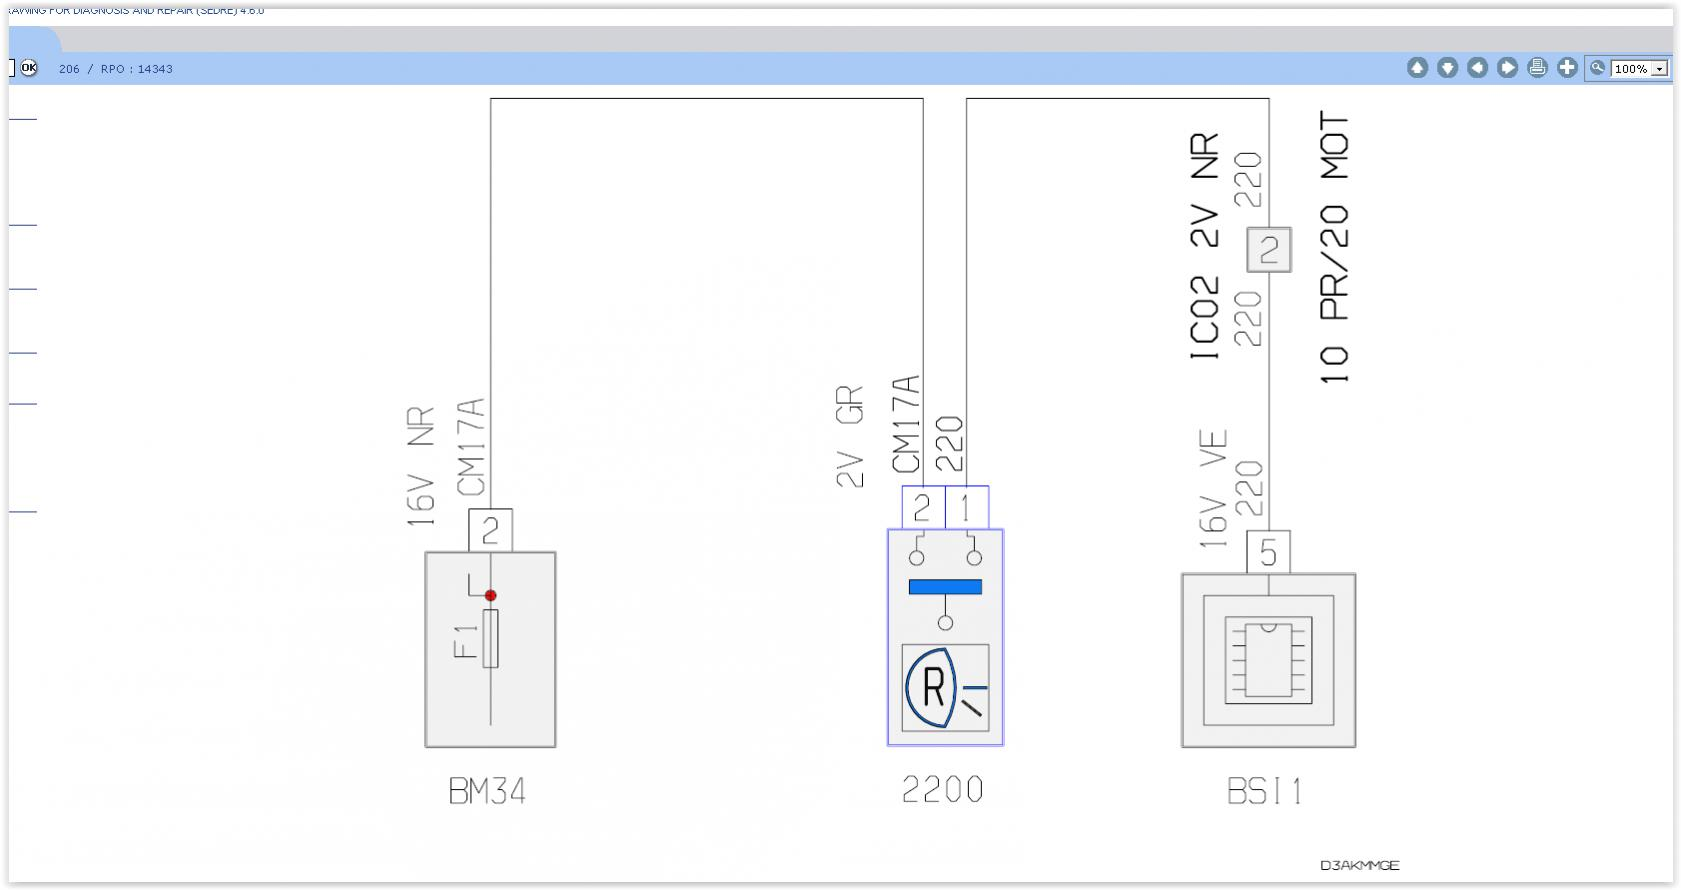 Reverse Lights Not Working Peugeot Forums E7 Fuse Box Location Screen Shot 03 01 18 10 06